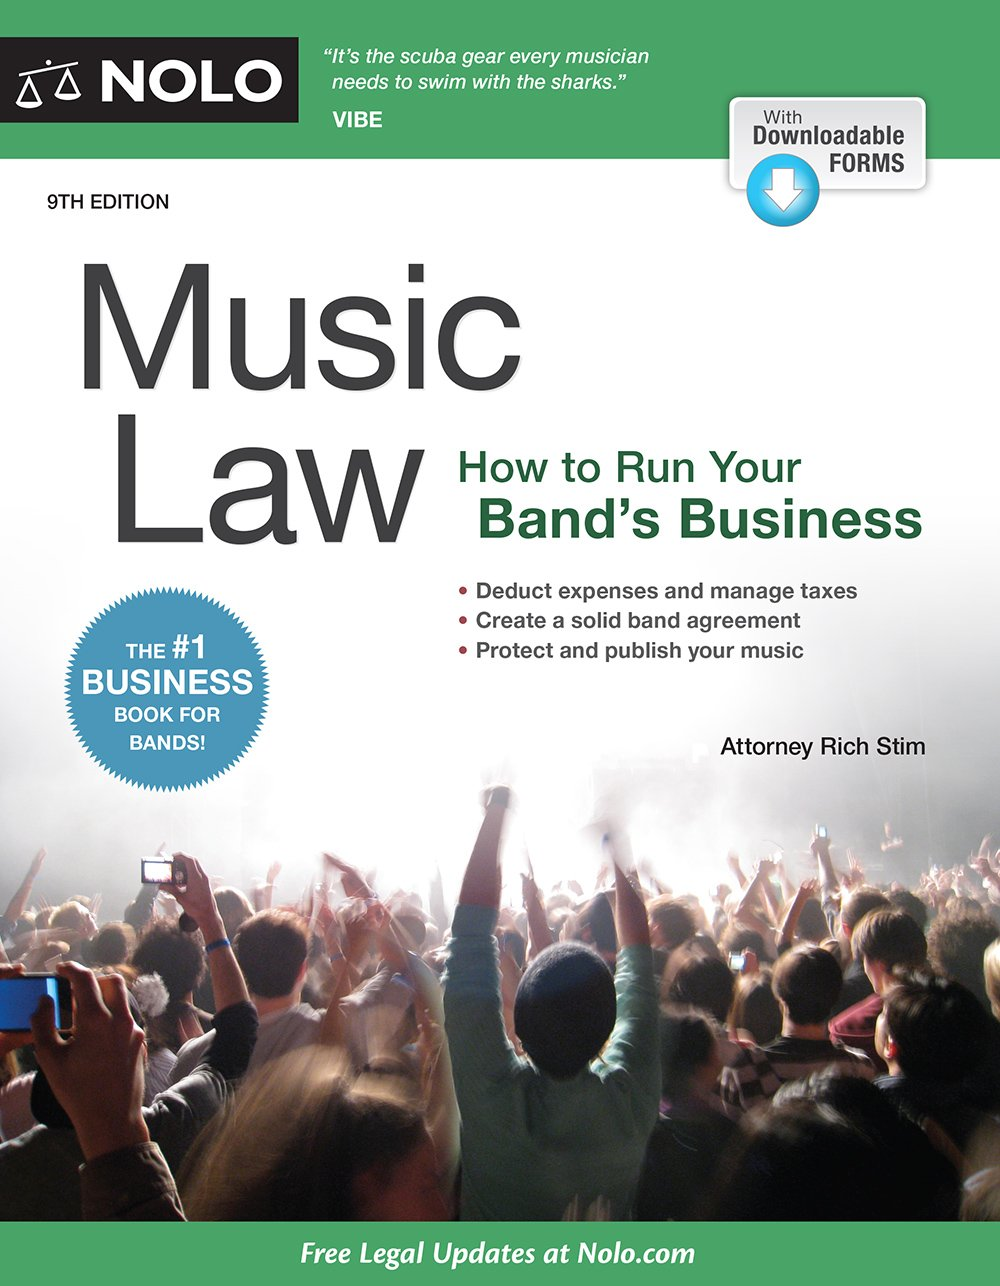 Music Law: How to Run Your Band's Business